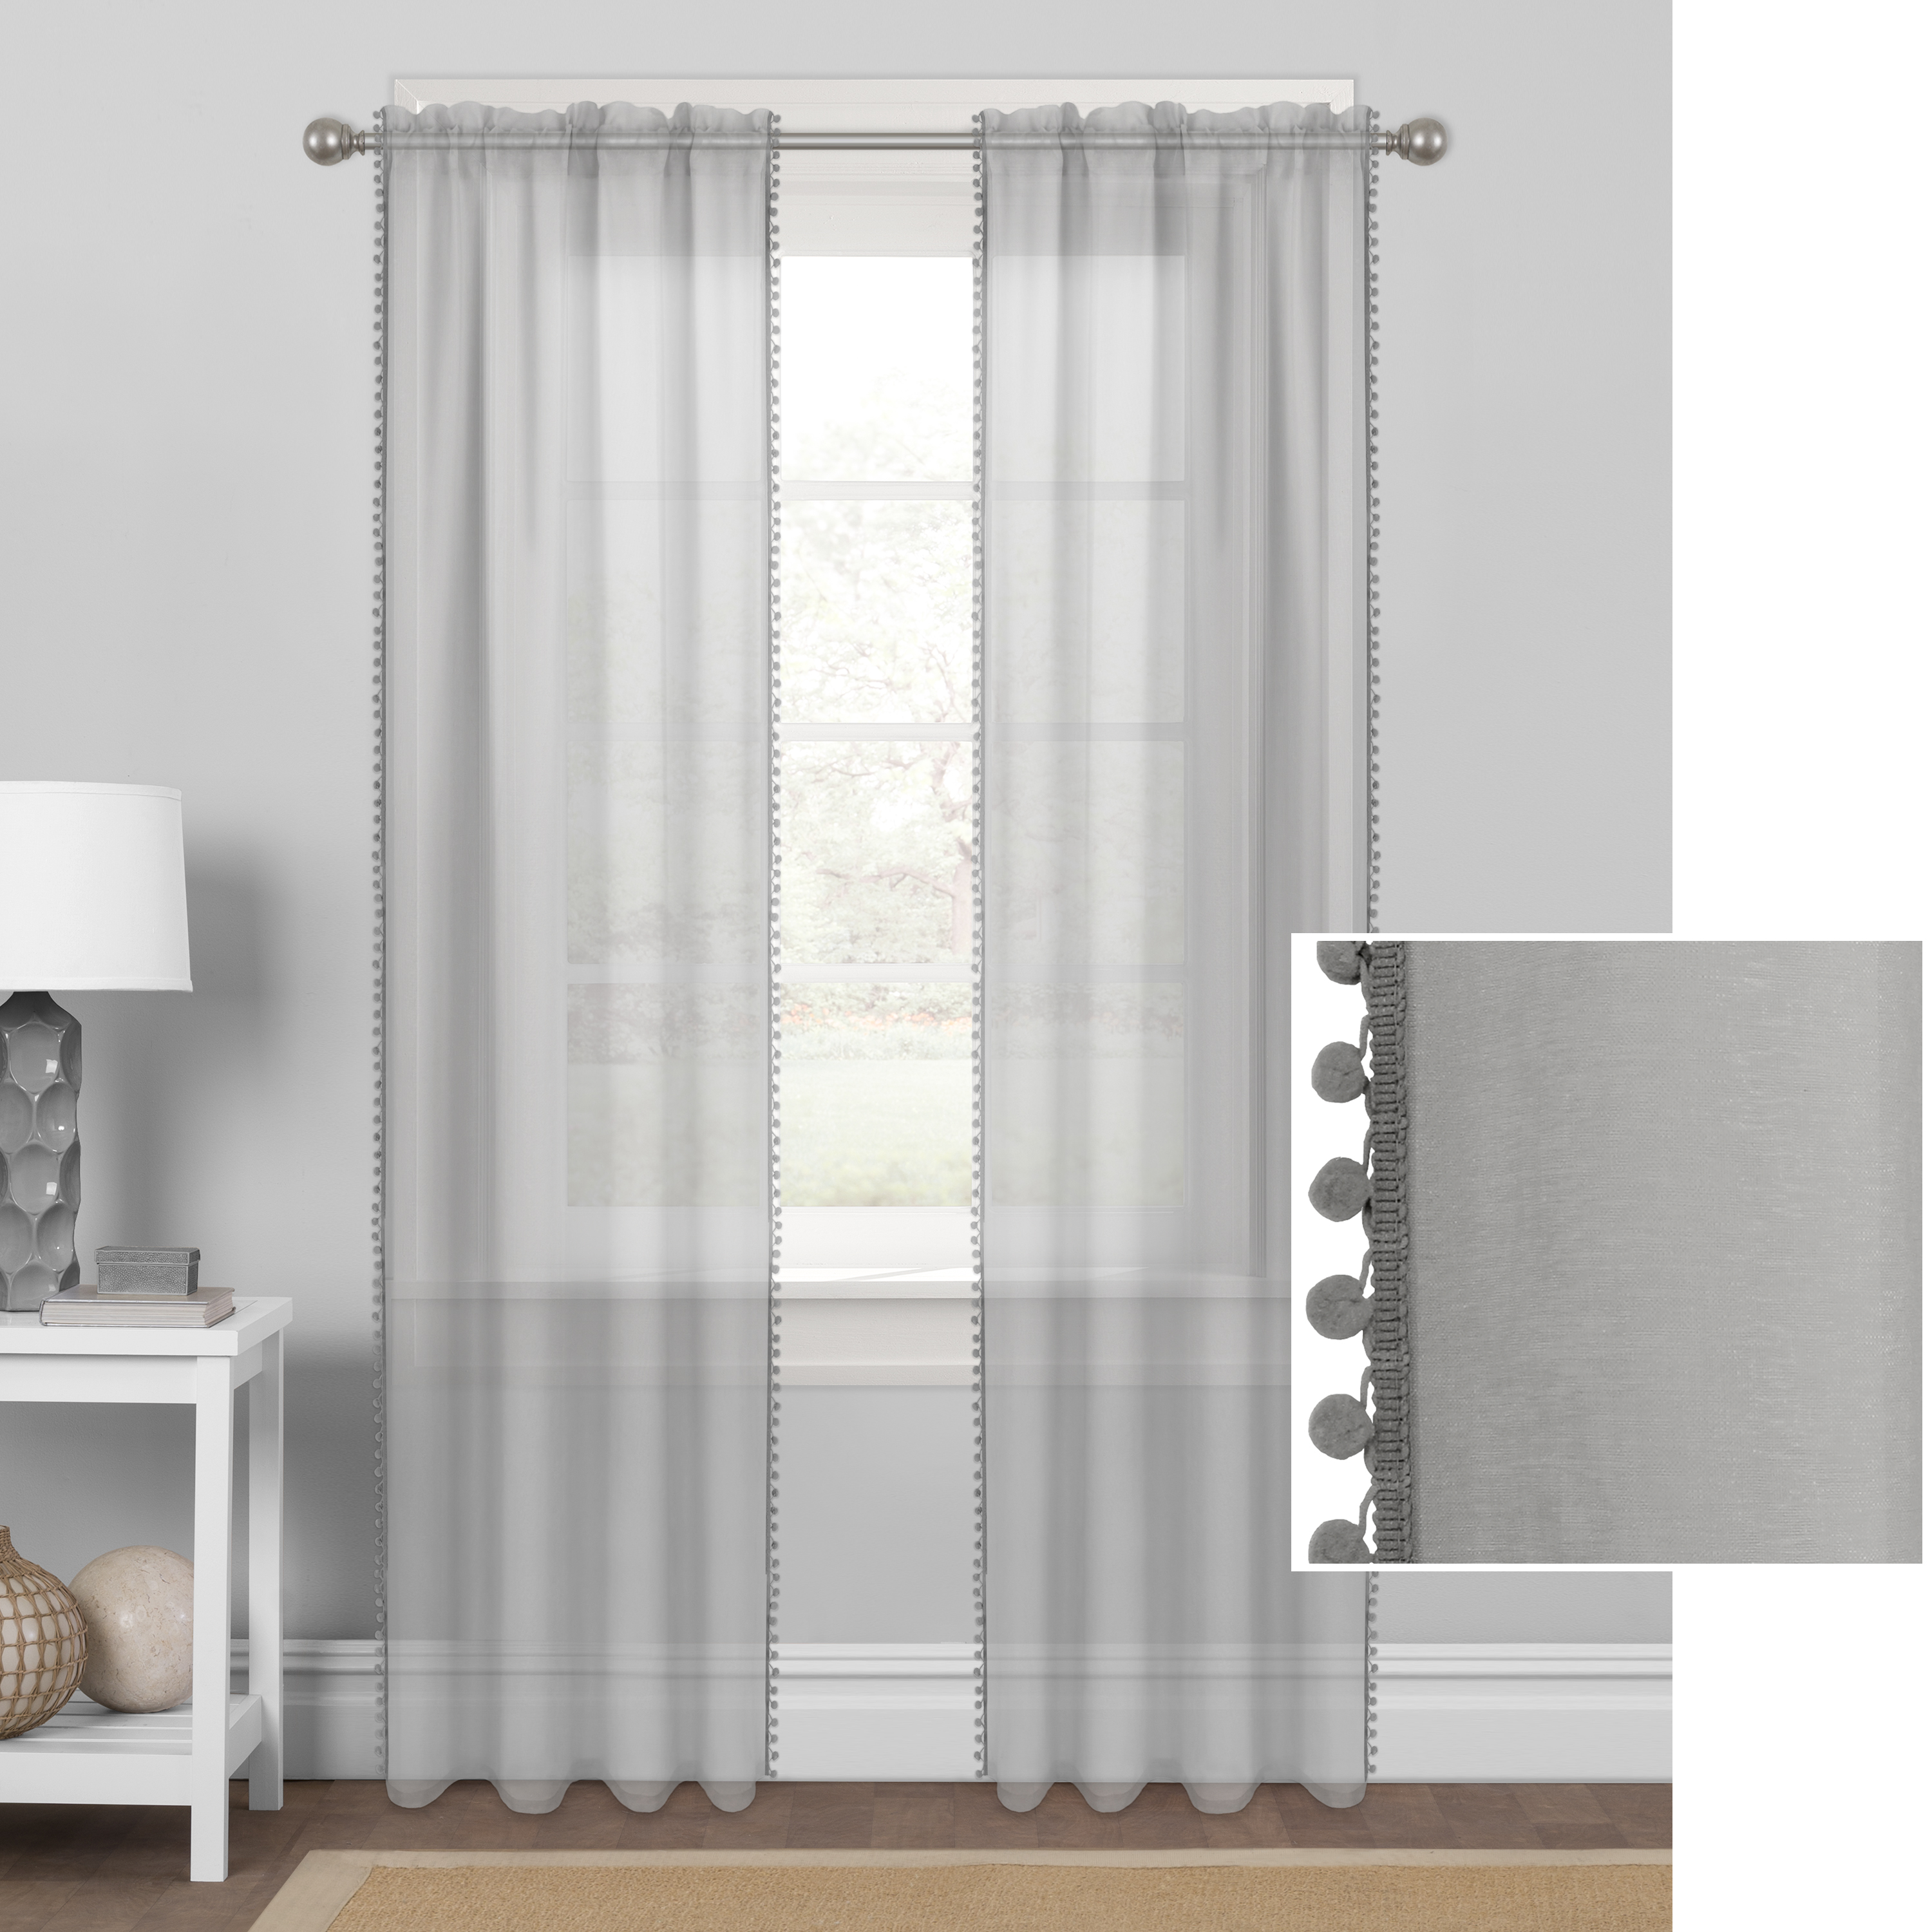 Mainstays Sheer with Pom-Poms Window Curtain Panel